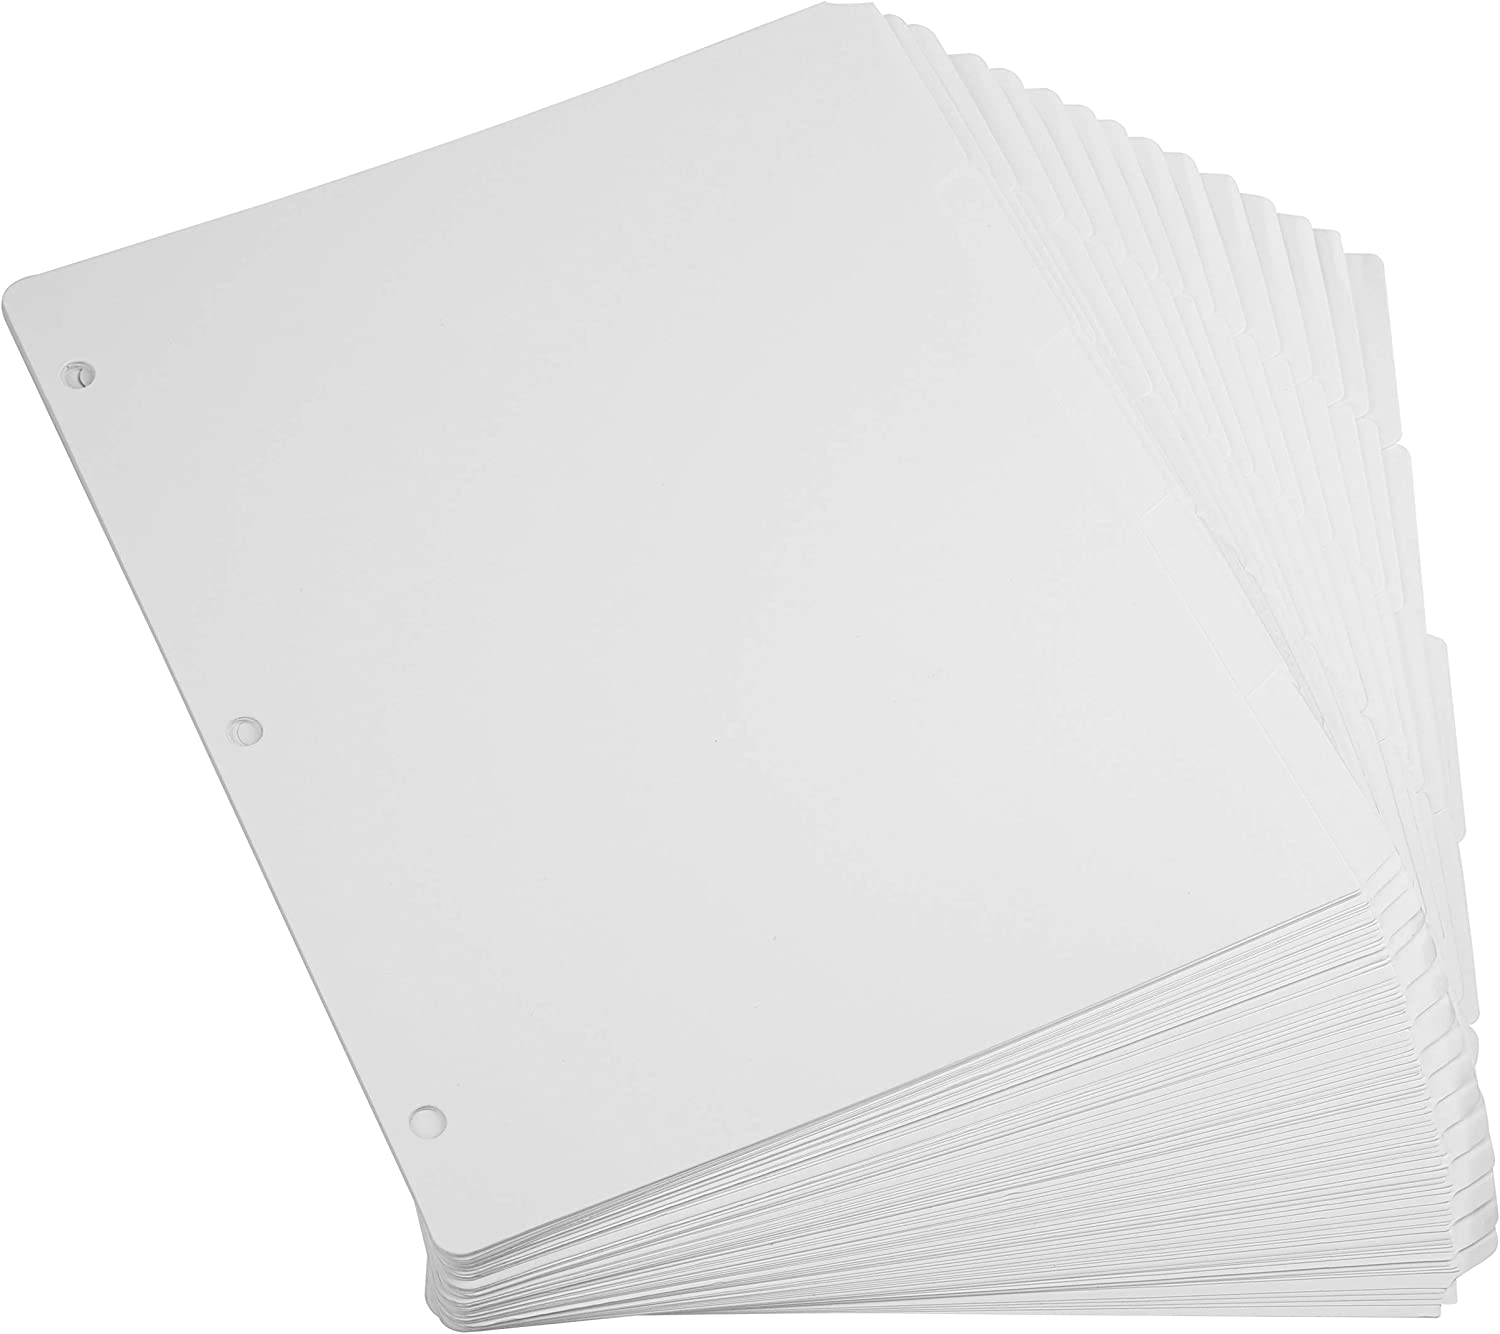 Fasmov 120 Page Divider Pack 3 Ring Binder Dividers with Reinforced Edge, Binder Index Dividers 1/5-Cut Tab, Letter Size